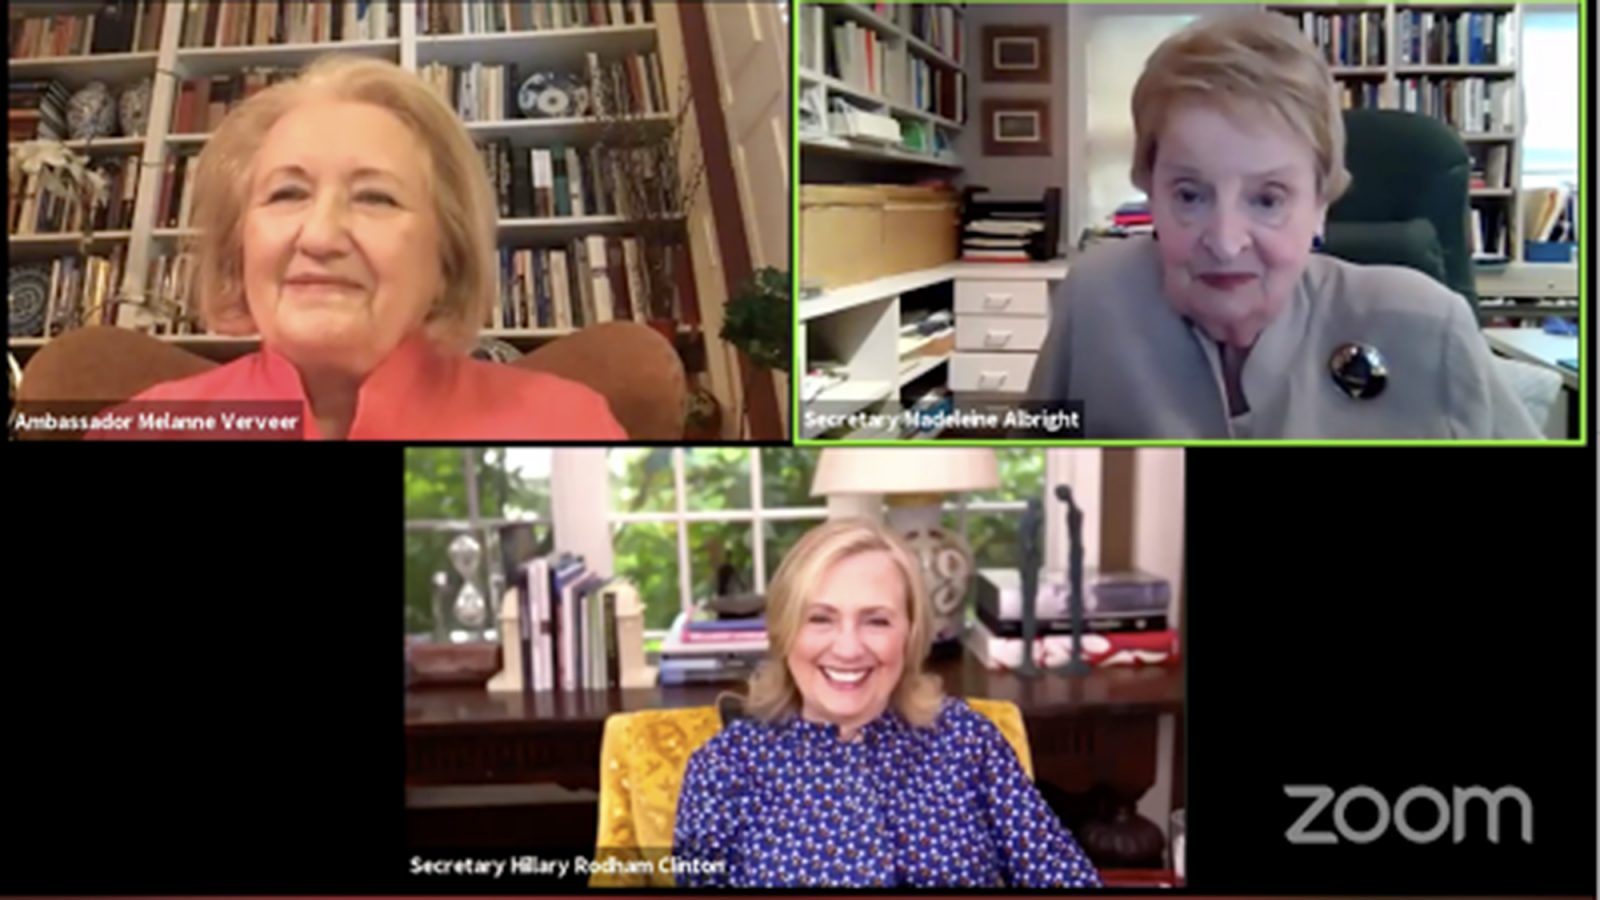 Melanne Verveer, Madeleine Albright and Hillary Rodham Clinton on Zoom